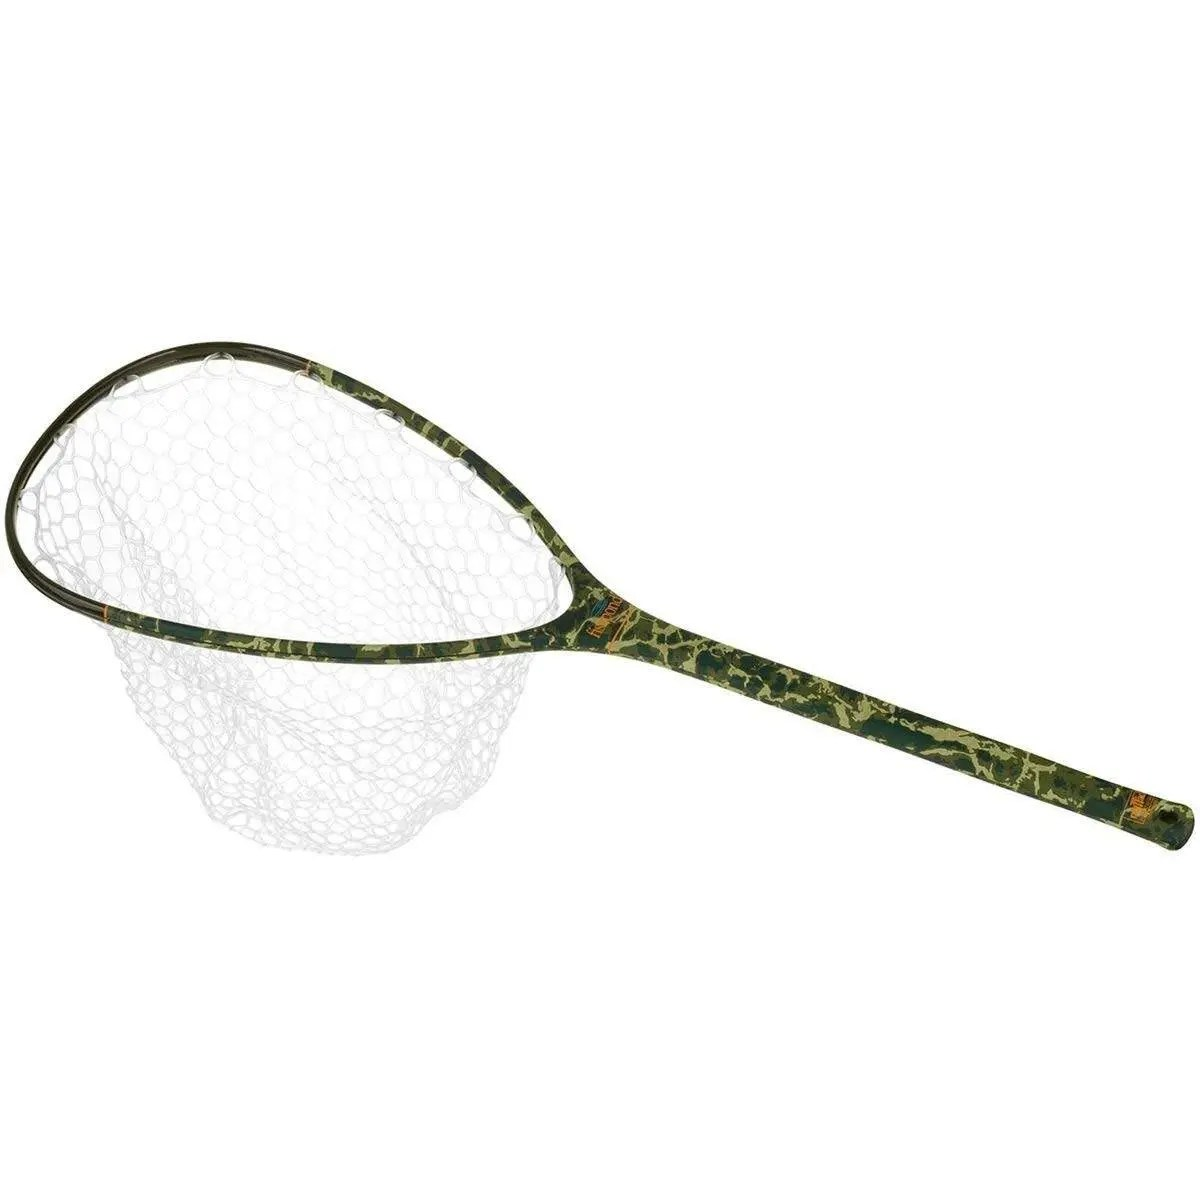 Fishpond Nomad Fly Fishing Carbon Fiber & Fiberglass composite Mid-Length Net